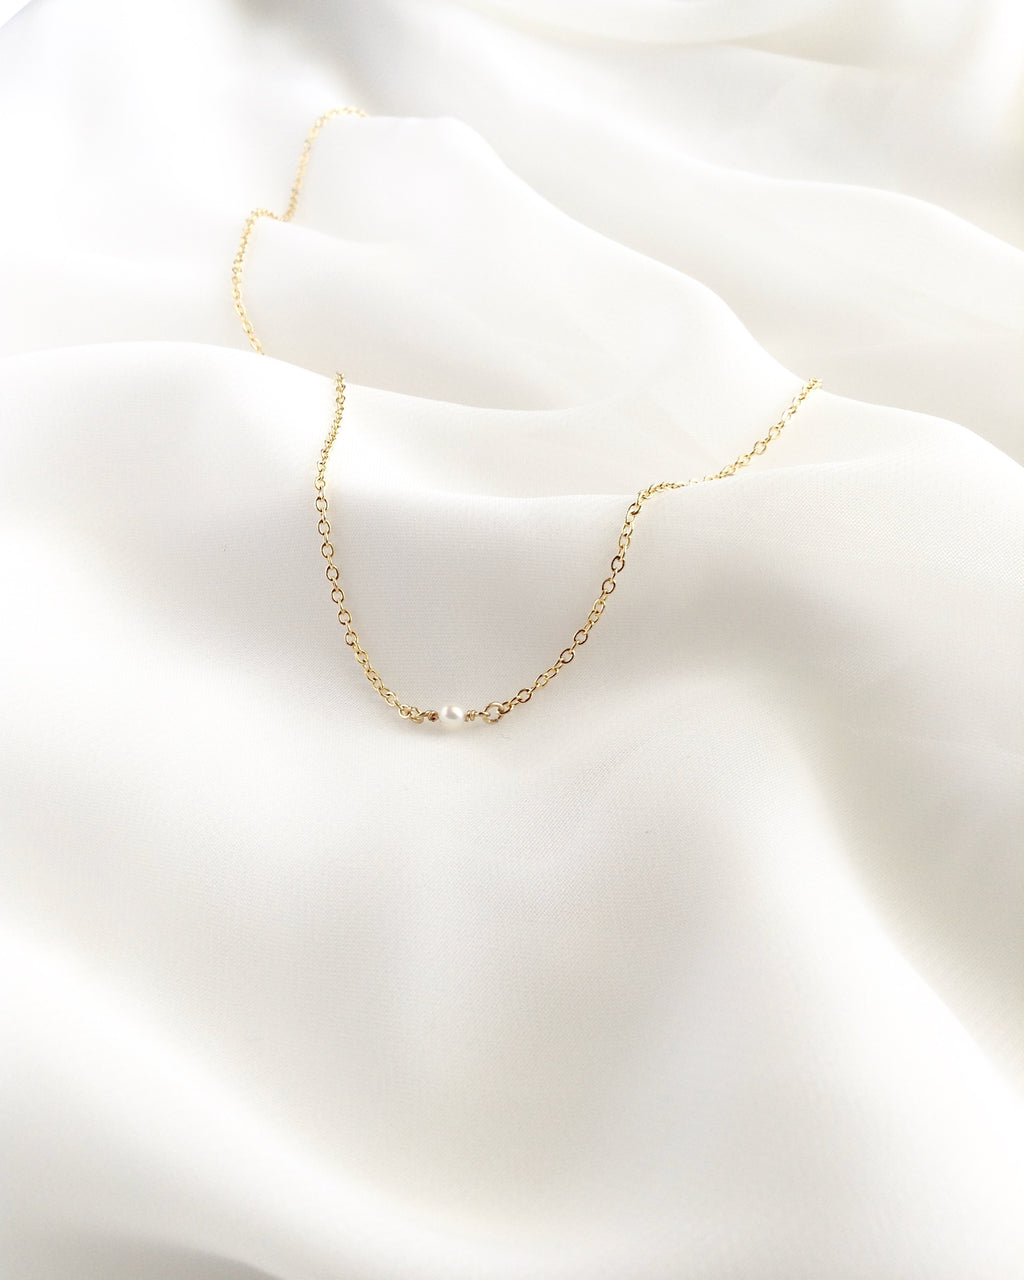 Tiny Minimalist Pearl Necklace | Simple Delicate Everyday Necklace | IB Jewelry